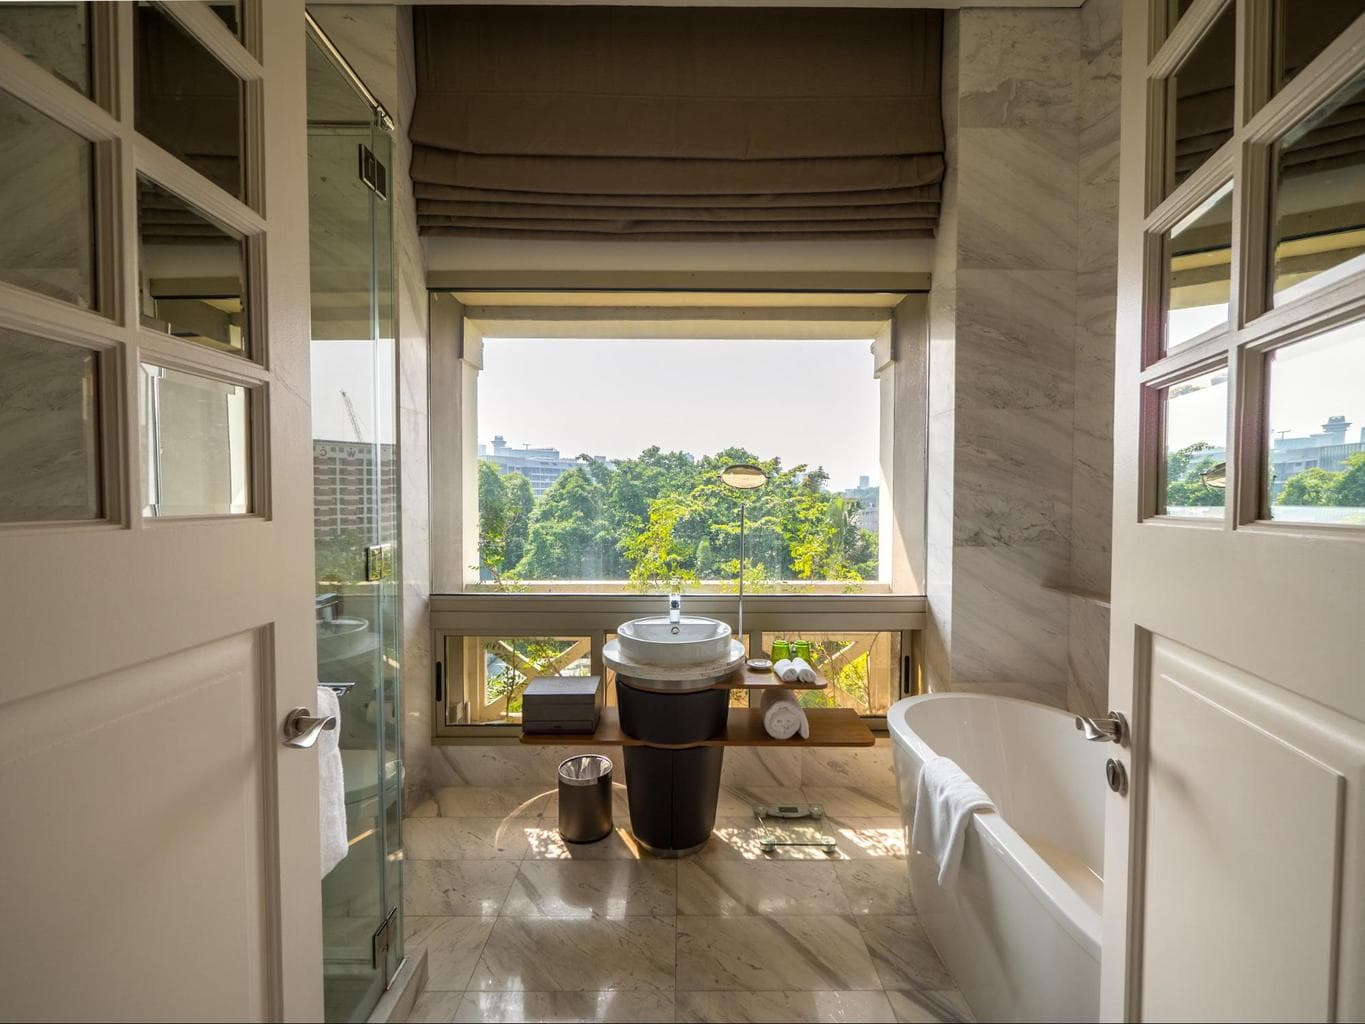 The glass enclosed verandah bathrooms at Hotel Fort Canning